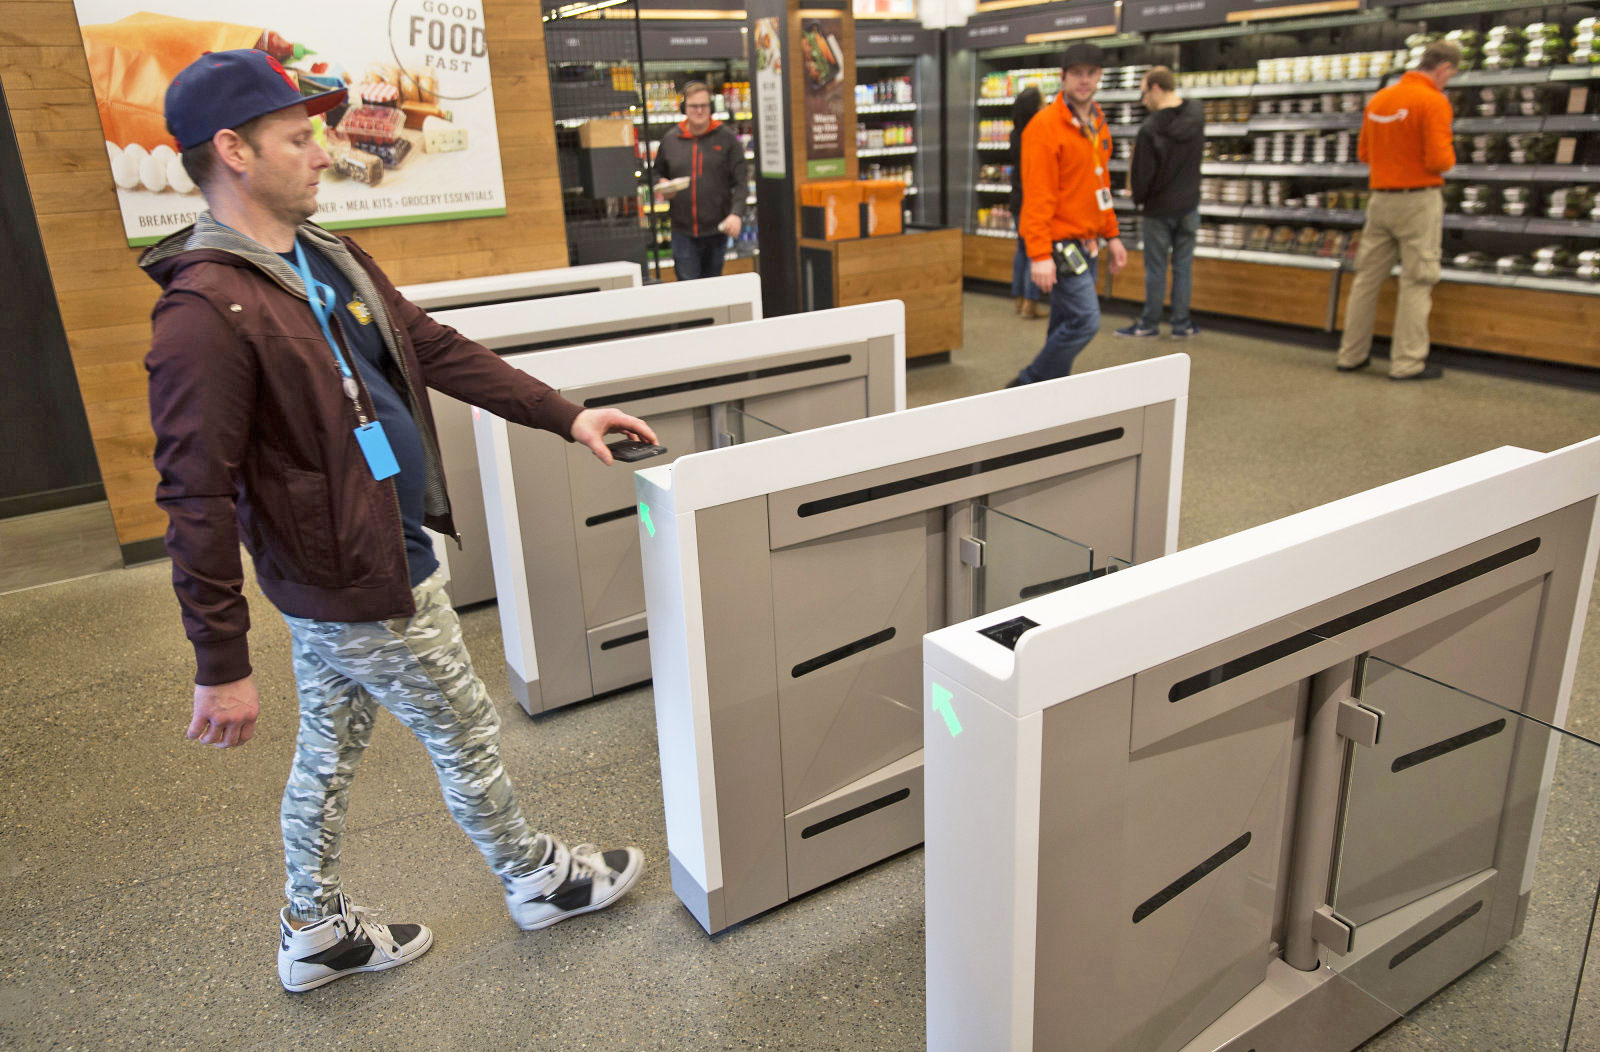 & Amazon\u0027s convenience store of the future makes me nervous